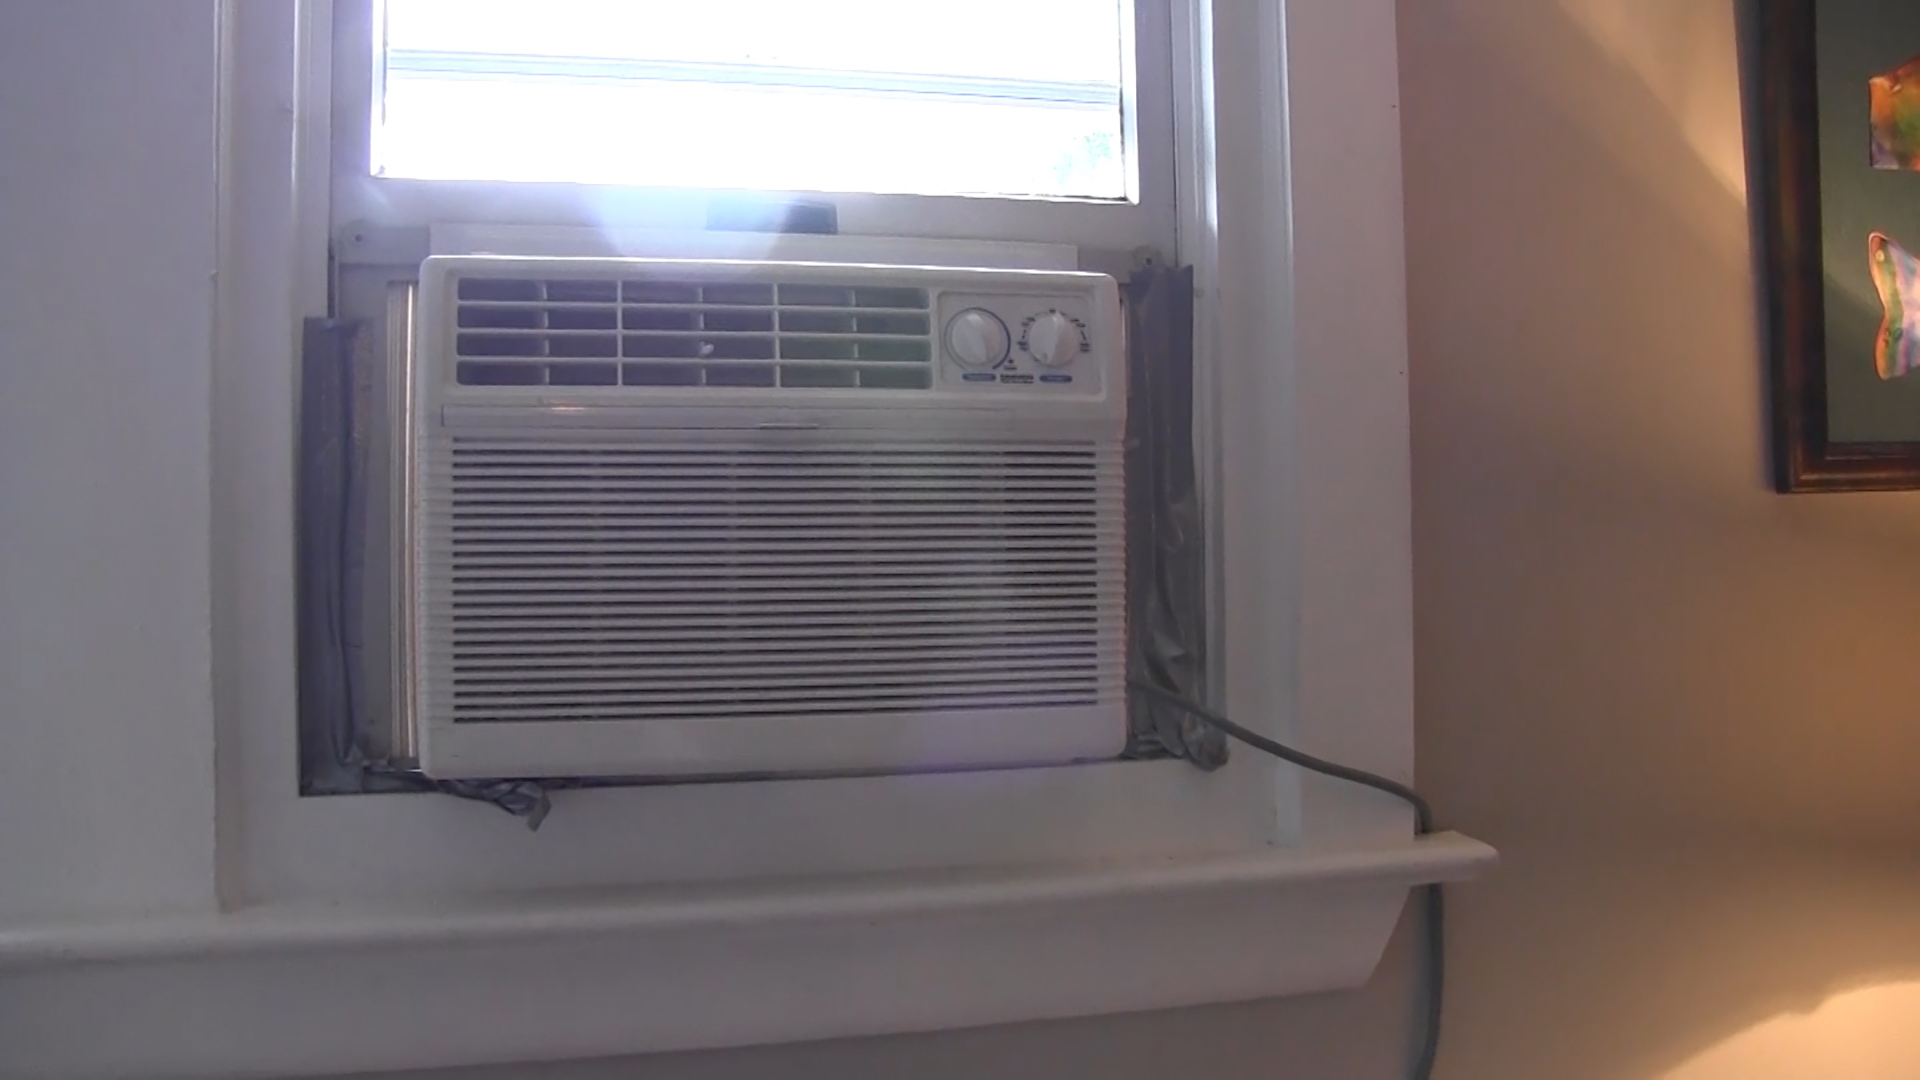 More From Consumer Reports. How To Maintain Your Air Conditioner